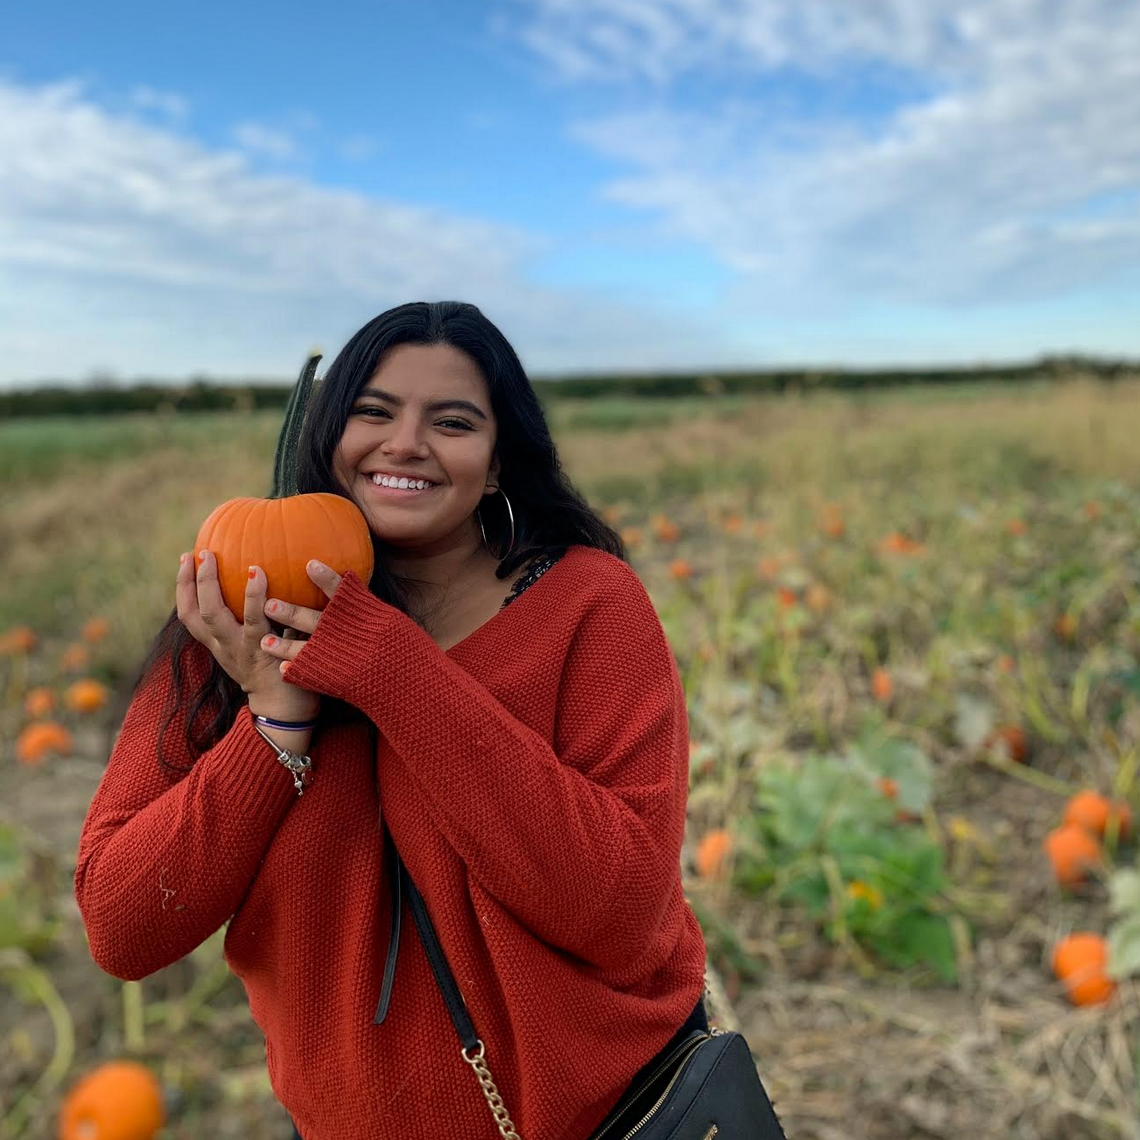 Sheryl smiles at the camera, in an outdoor space holding a small pumpkin.